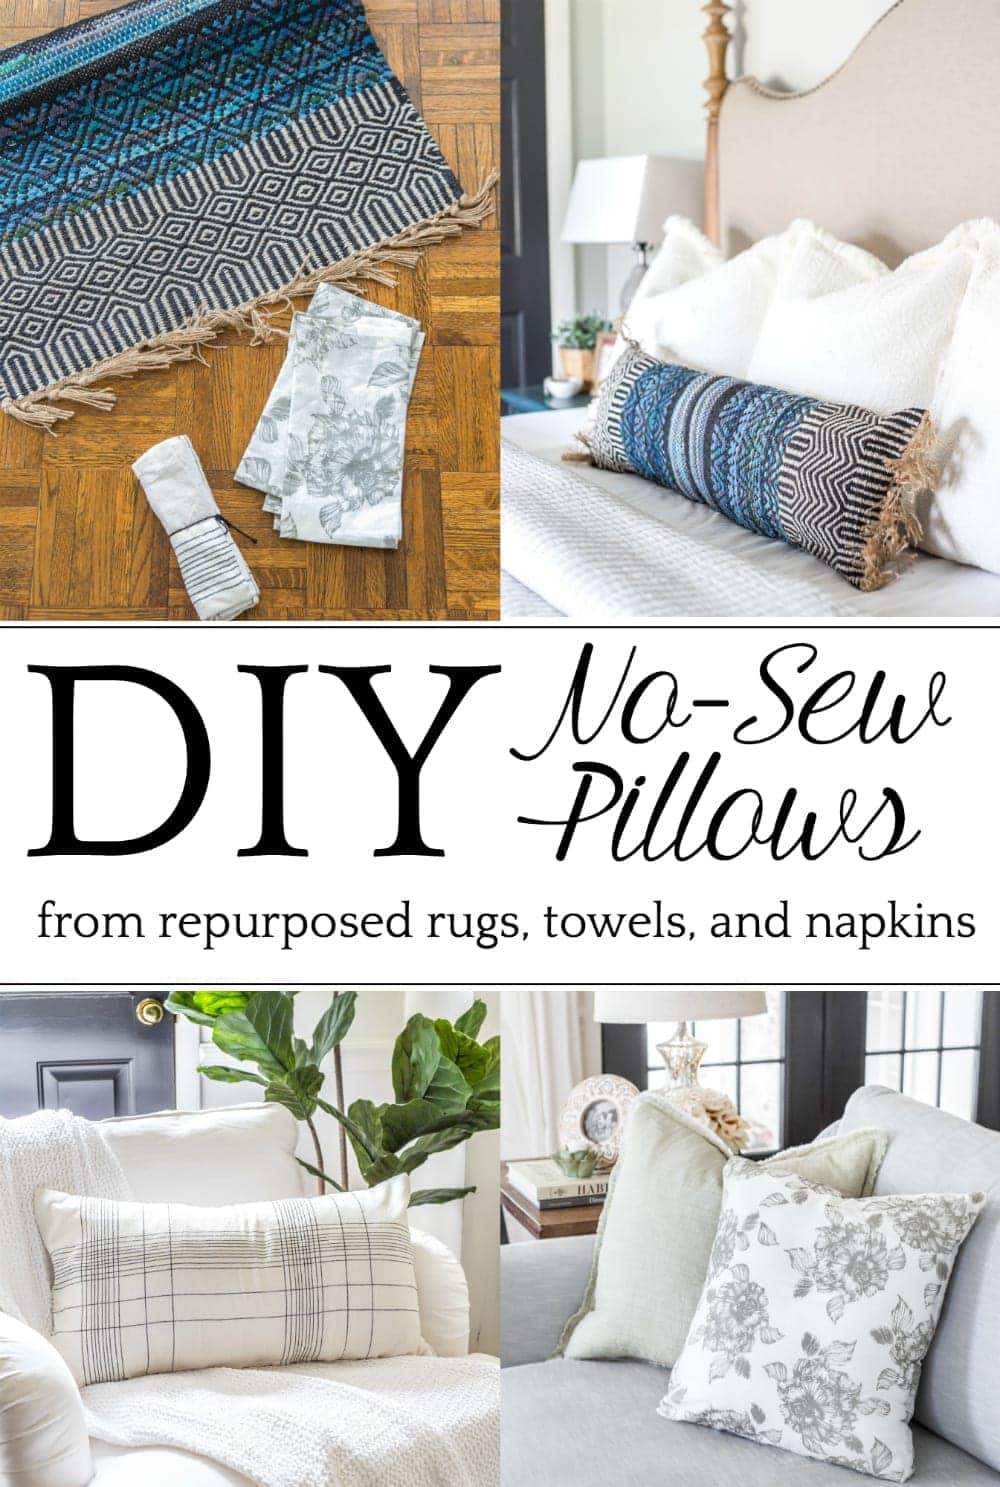 3 items you can repurpose into DIY no-sew throw pillows | Three everyday household items you can use to make inexpensive throw pillows, plus how to do it using a no-sew method in minutes. #throwpillows #repurposing #diypillows #nosew #nosewprojects #nosewcrafts #diydecor #budgetdecor